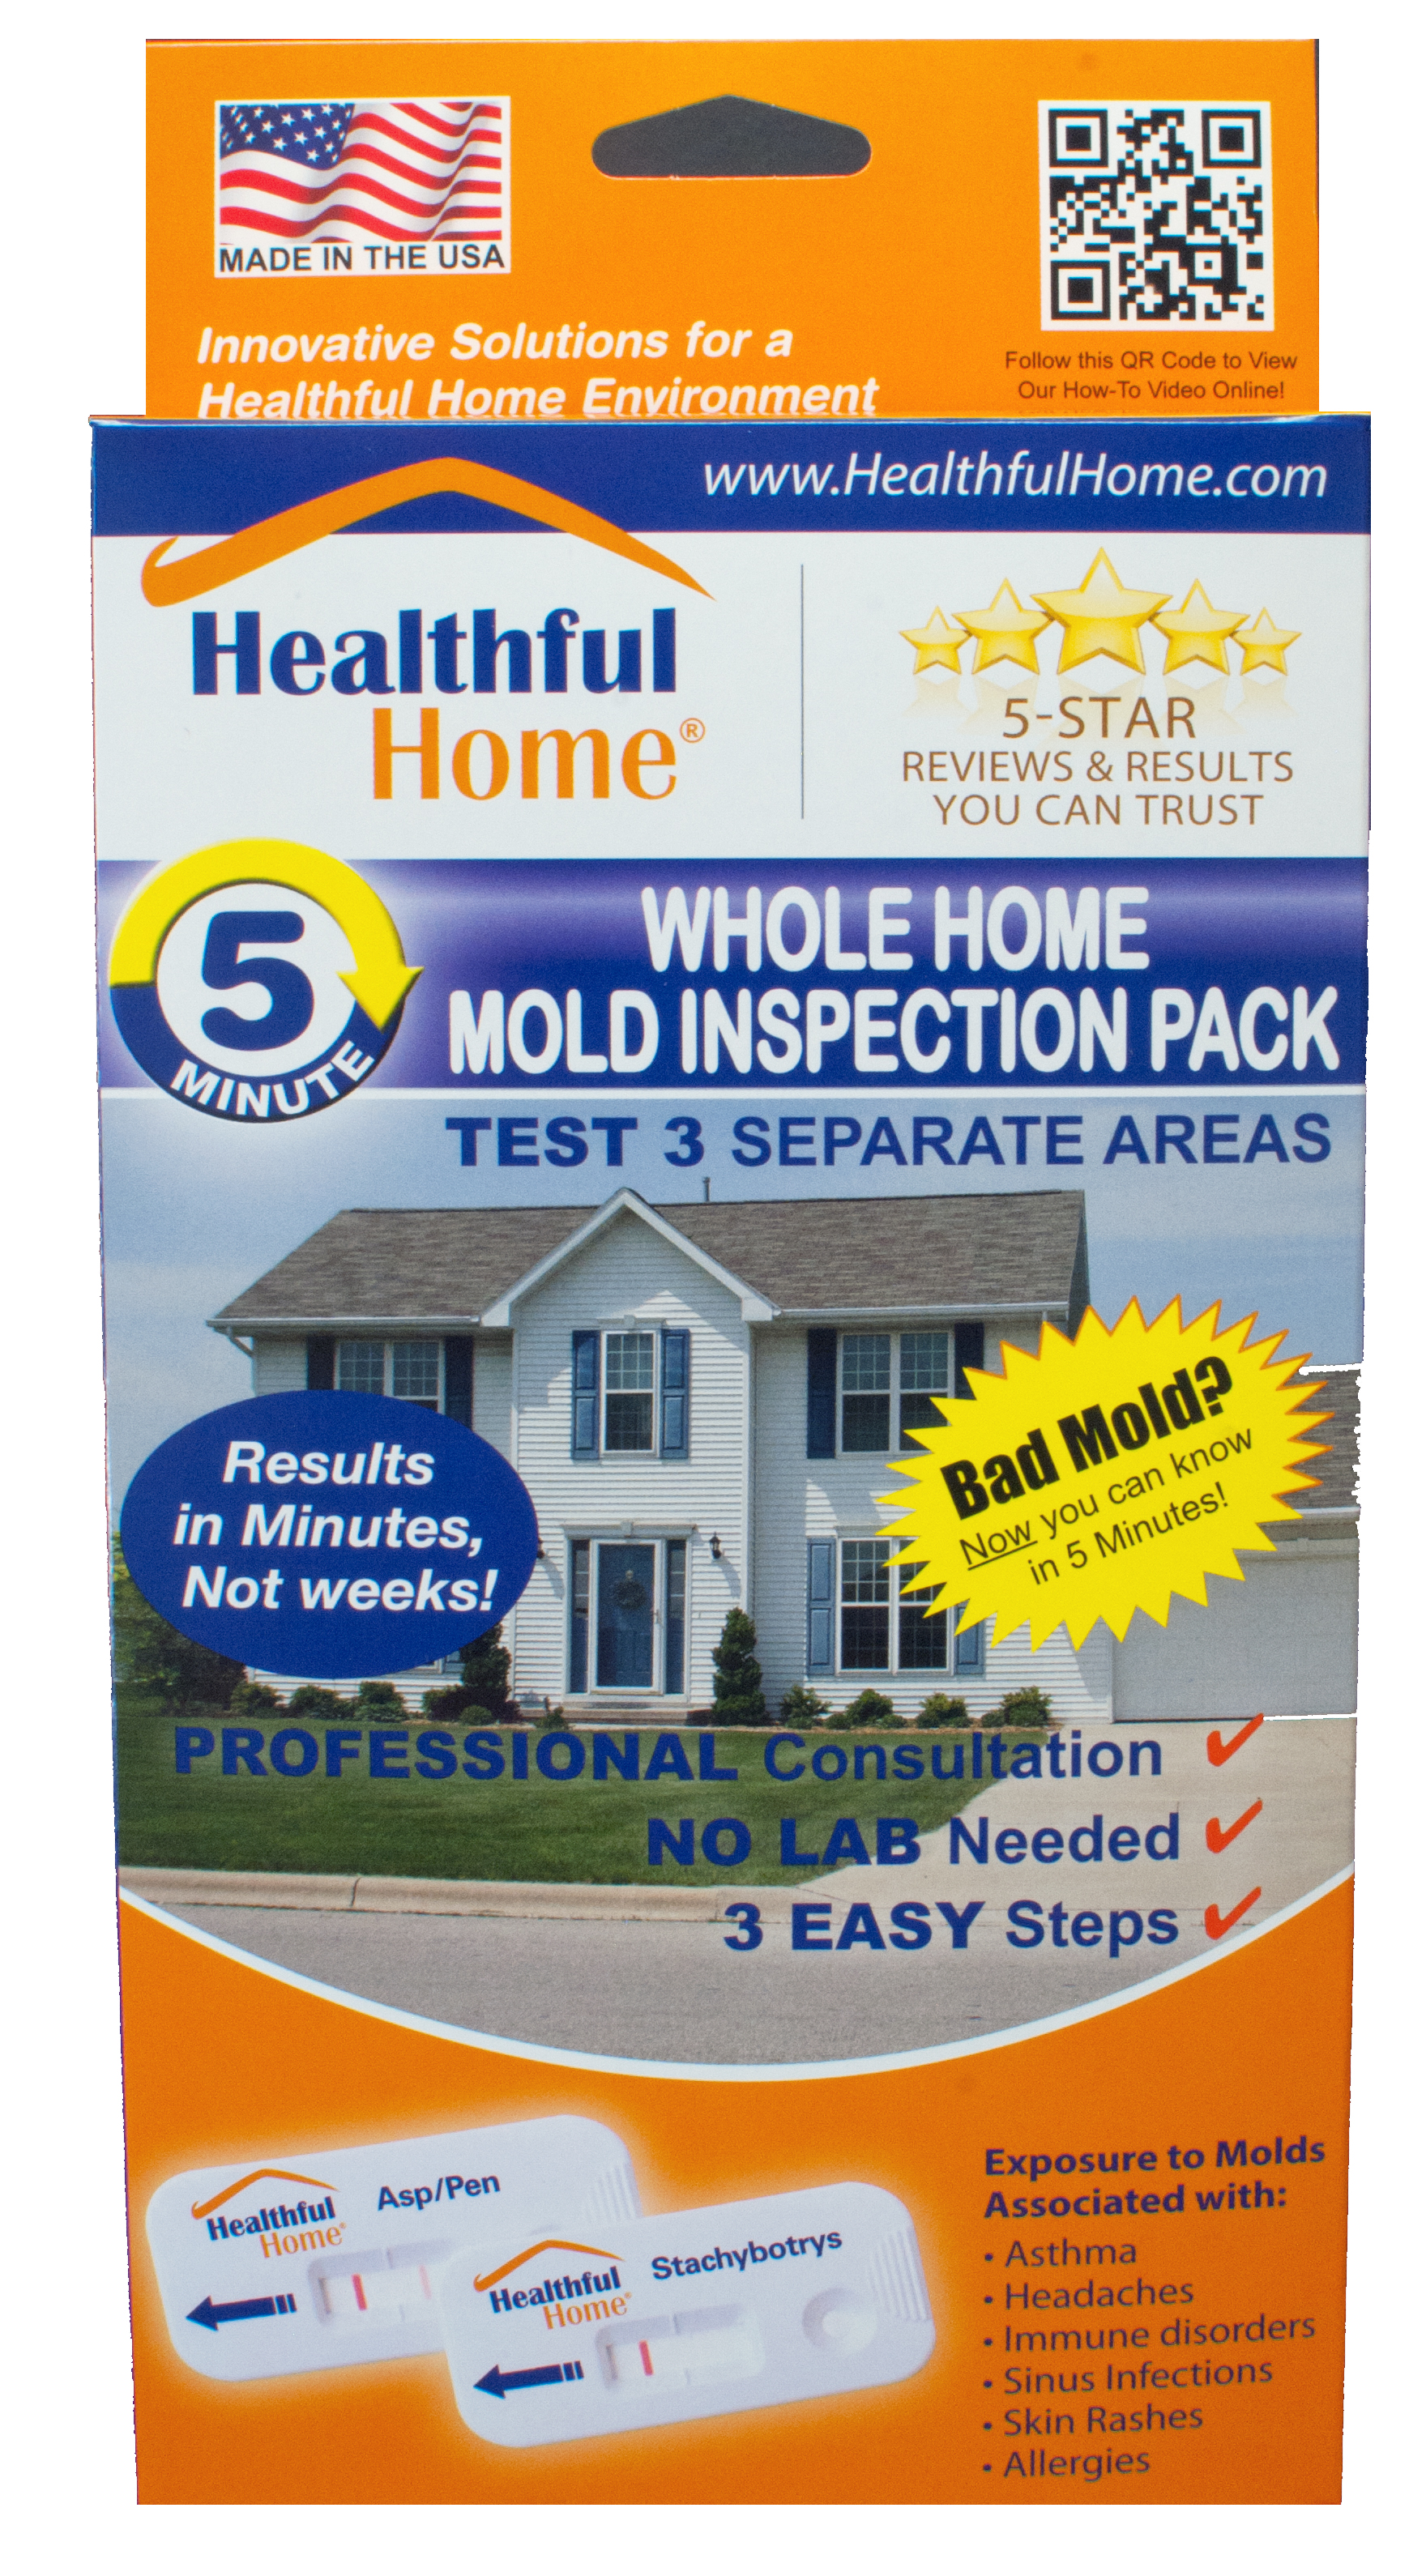 Whole Home 5 Minute Mold Inspection Pack